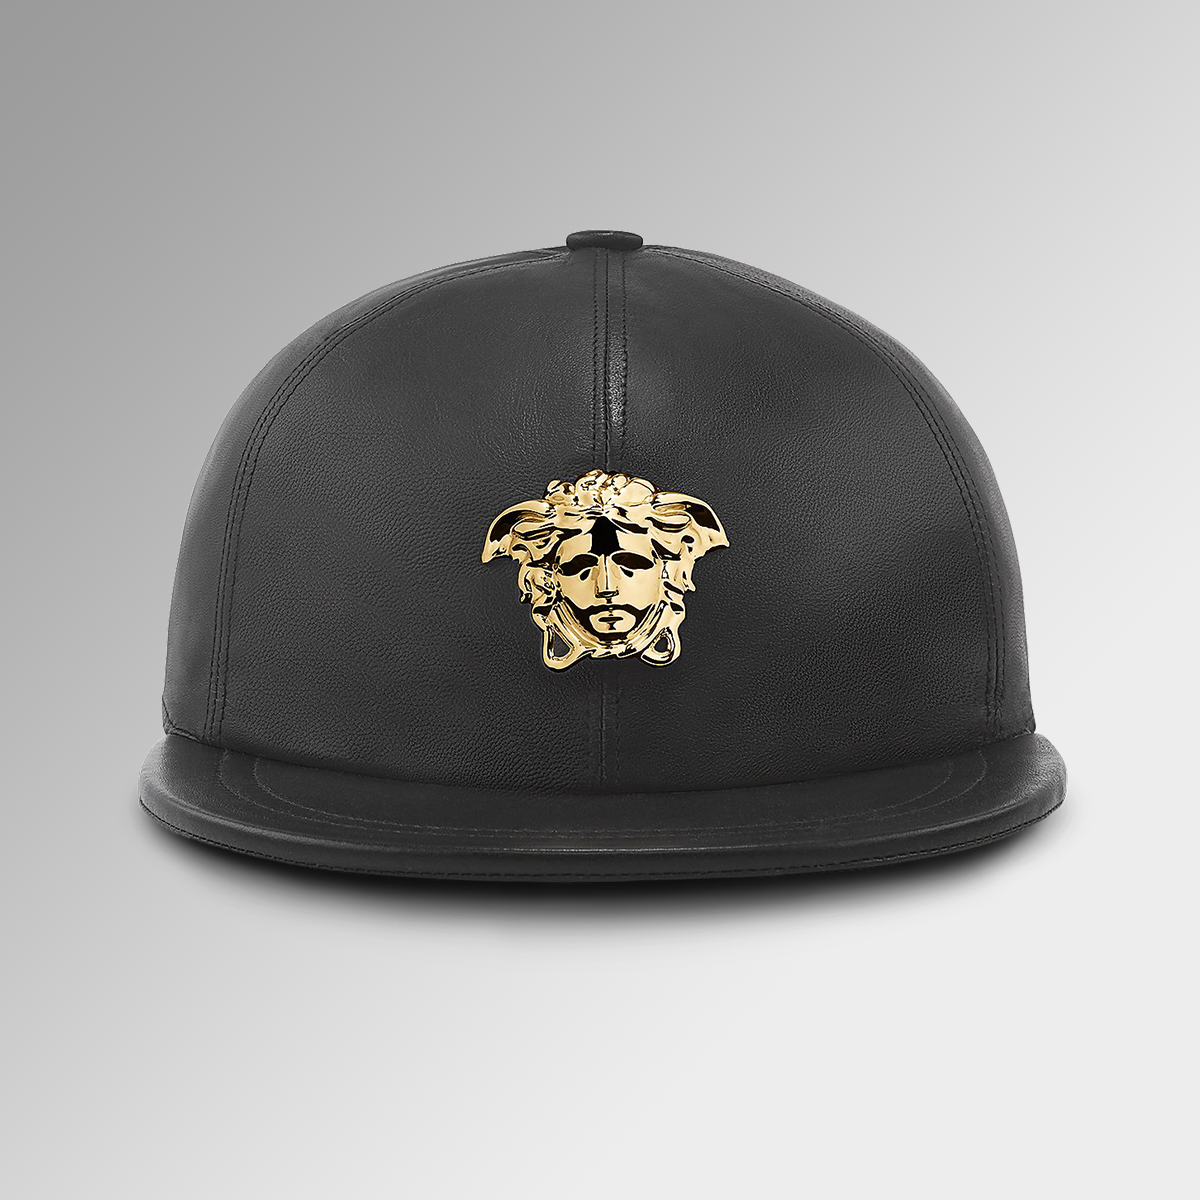 3a10ff74d Define your bold attitude with this #Medusa cap. Get more #Versace leather  goods on versace.com